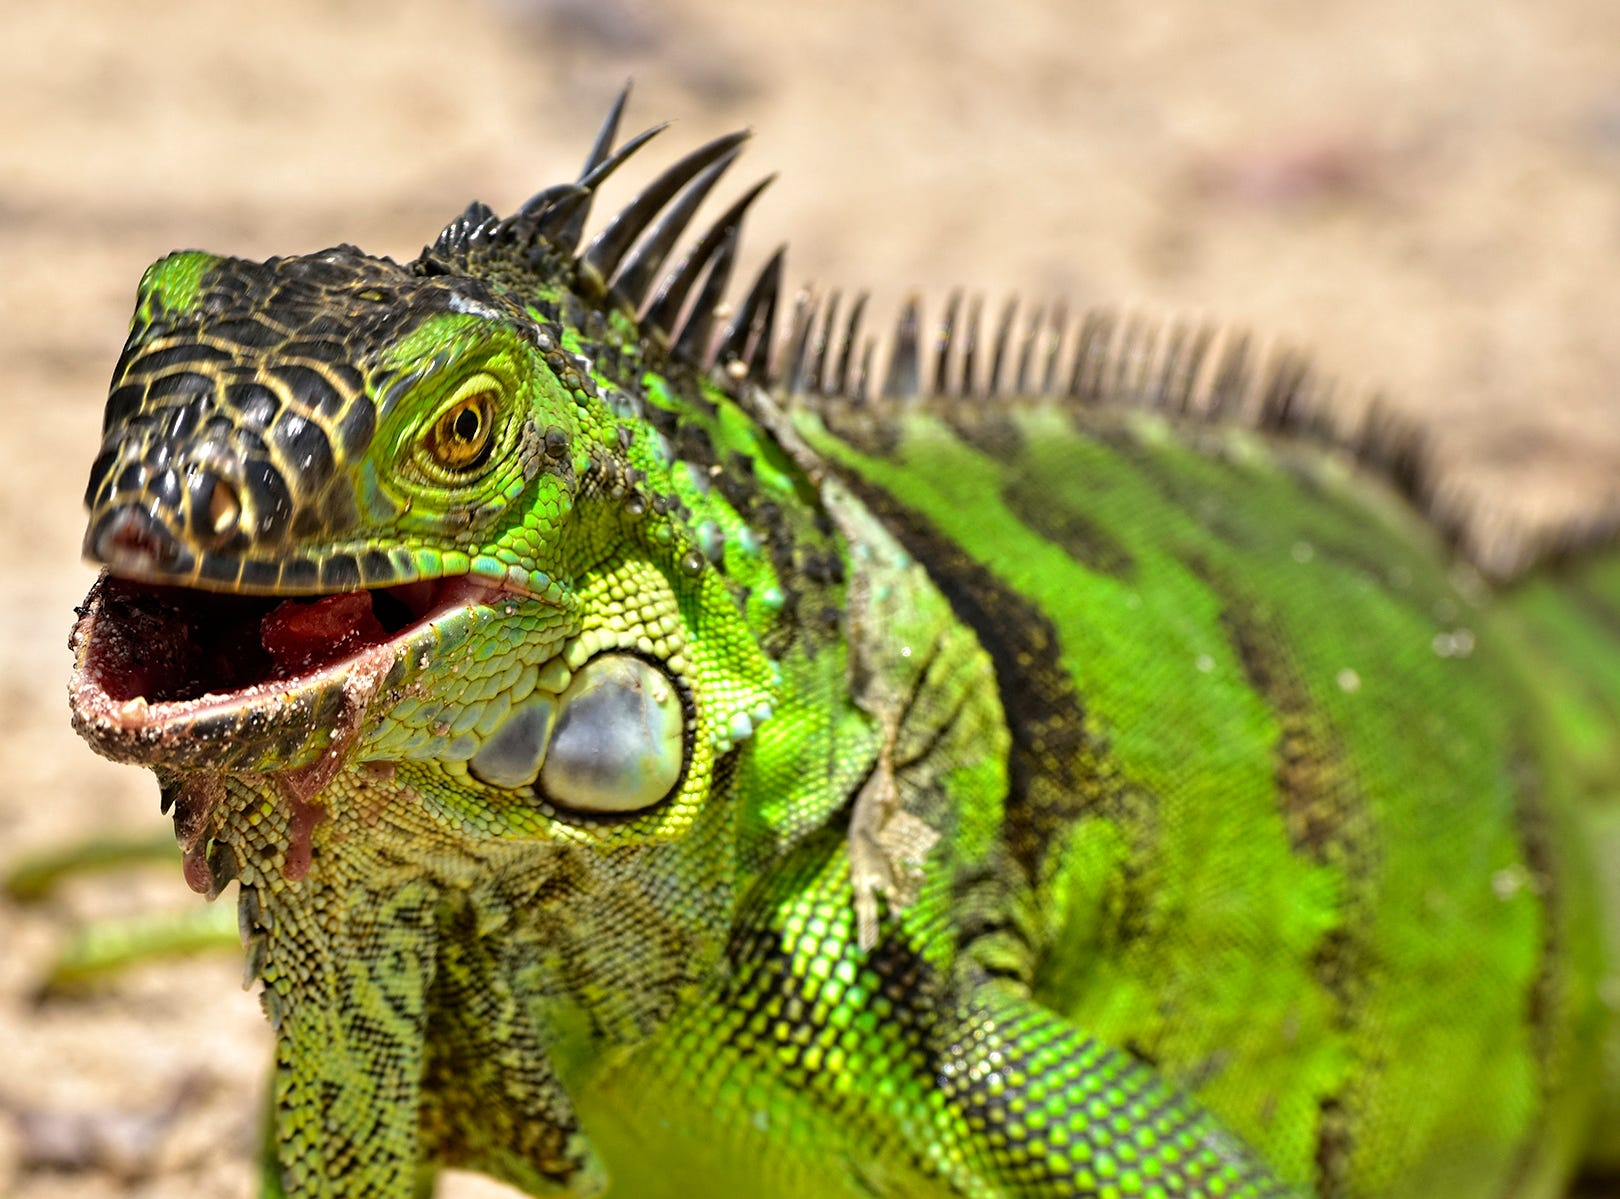 Jim Mandeville found a large and colorful iguana in Hobe Sound.